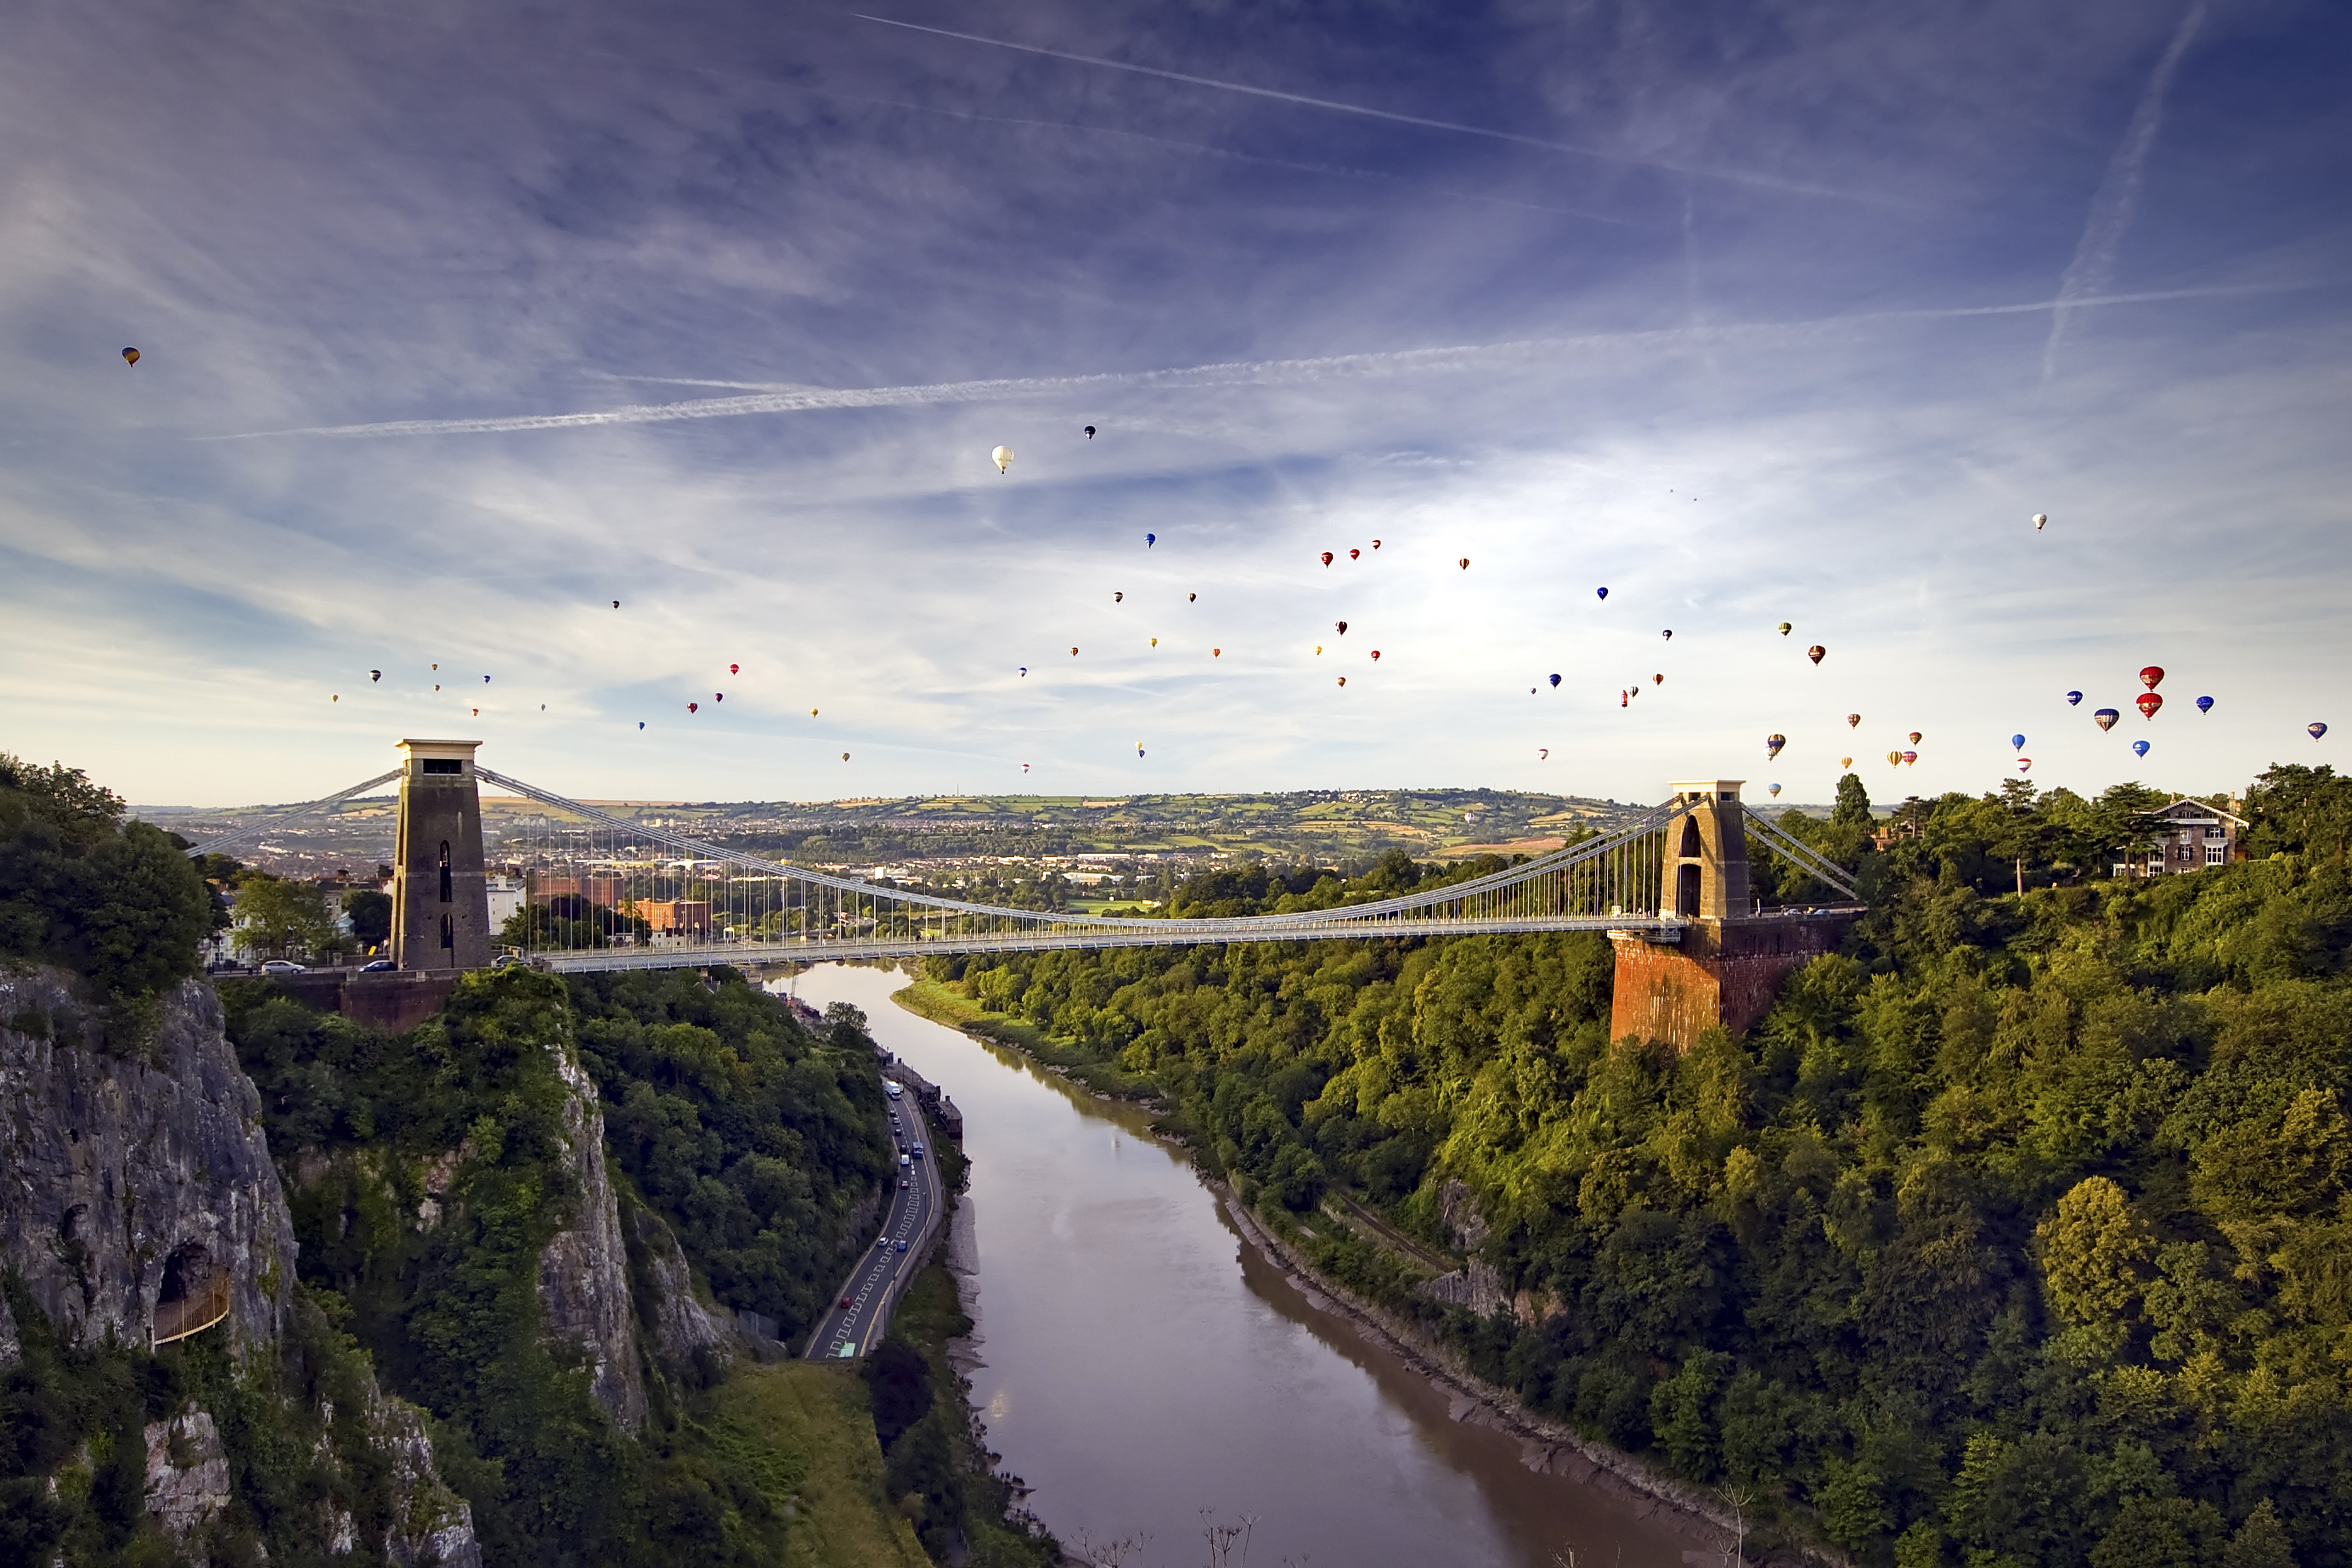 A view up the Avon Gorge of the Clifton Suspension Bridge with a hot air balloon launch behind.